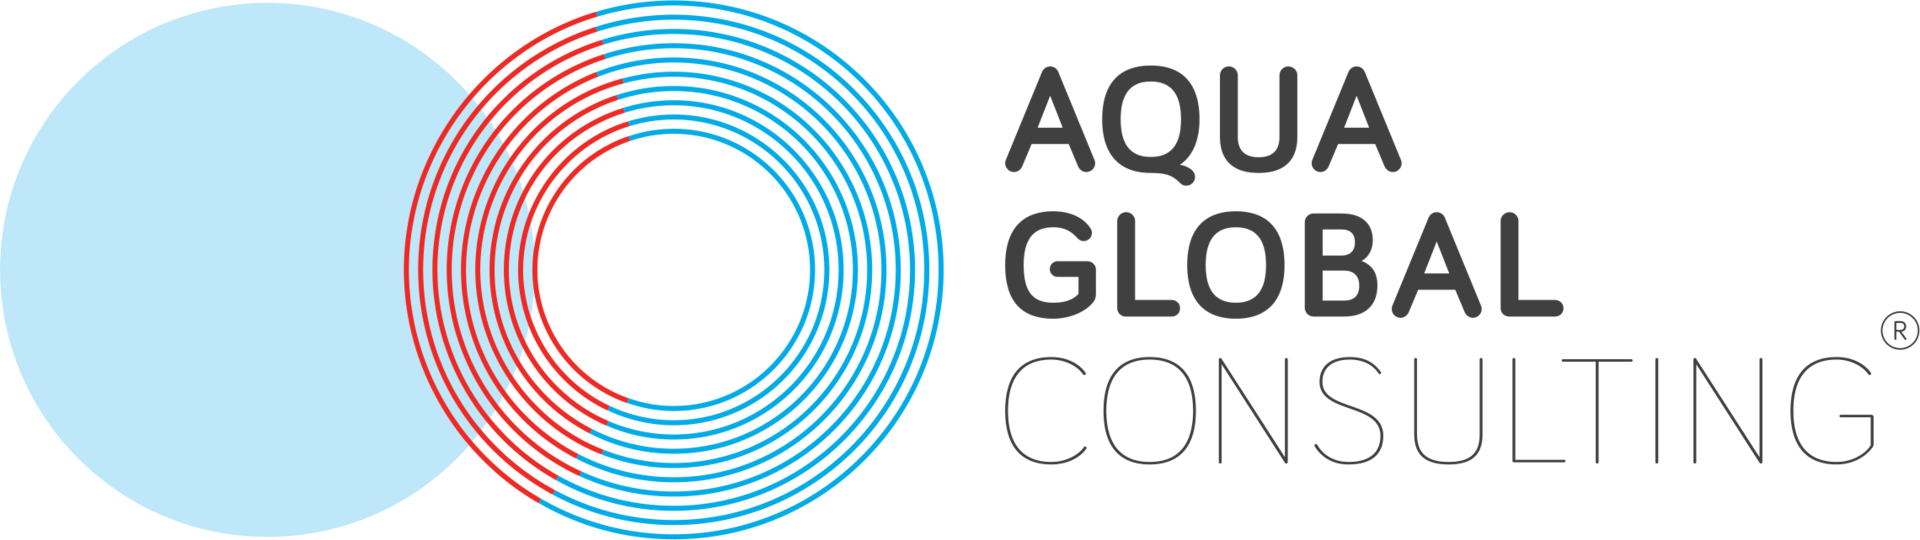 Logiciel Drag & Drop - AQUA GLOBAL CONSULTING